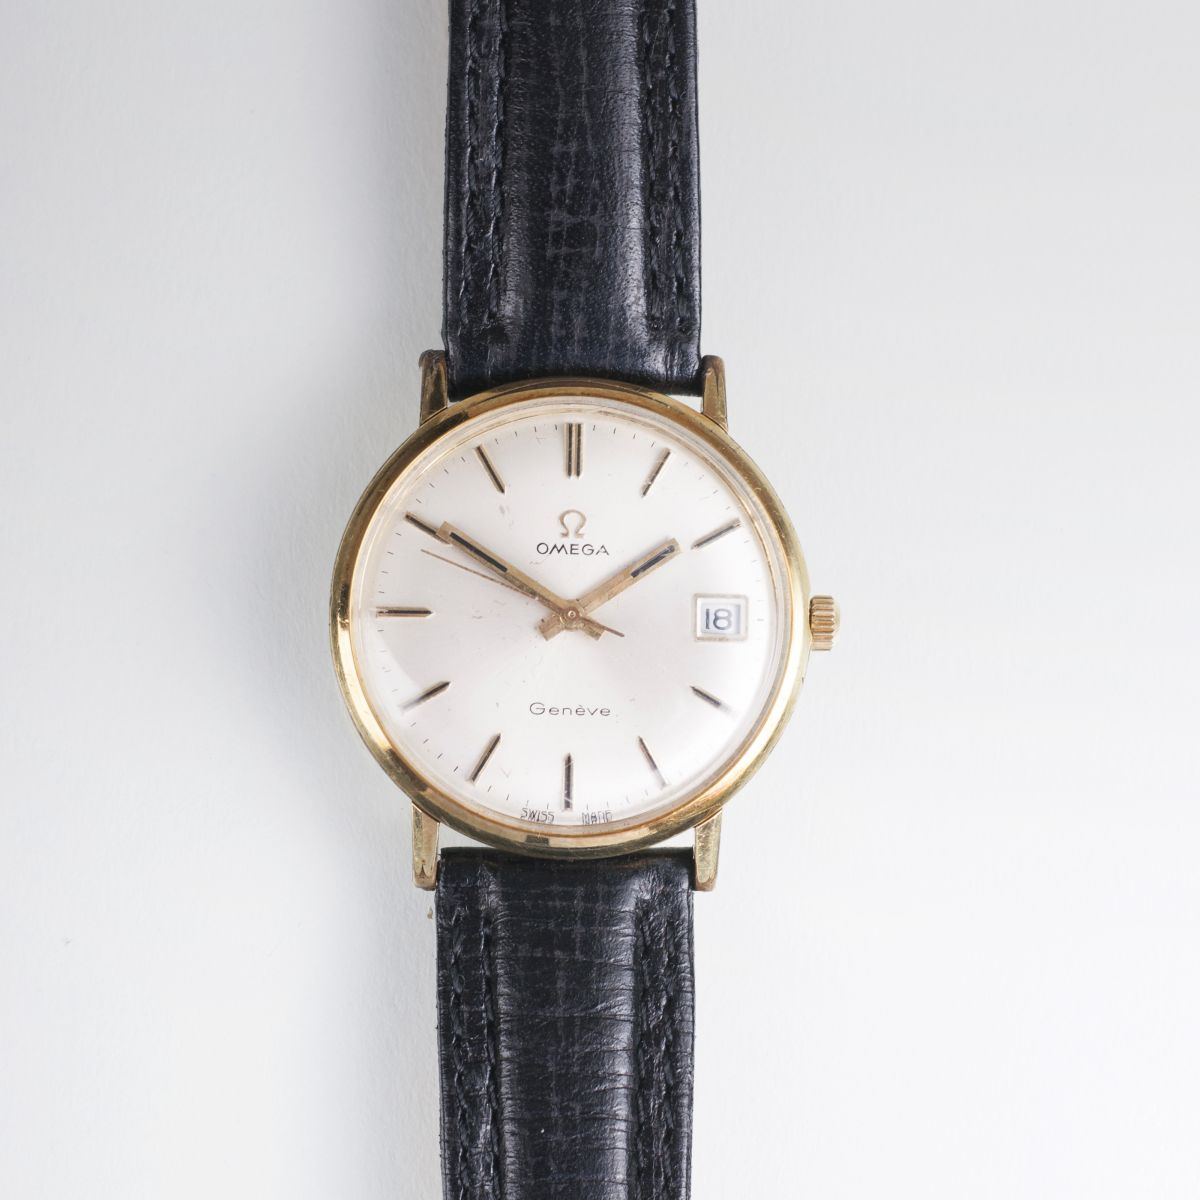 A Vintage gentlemen's watch